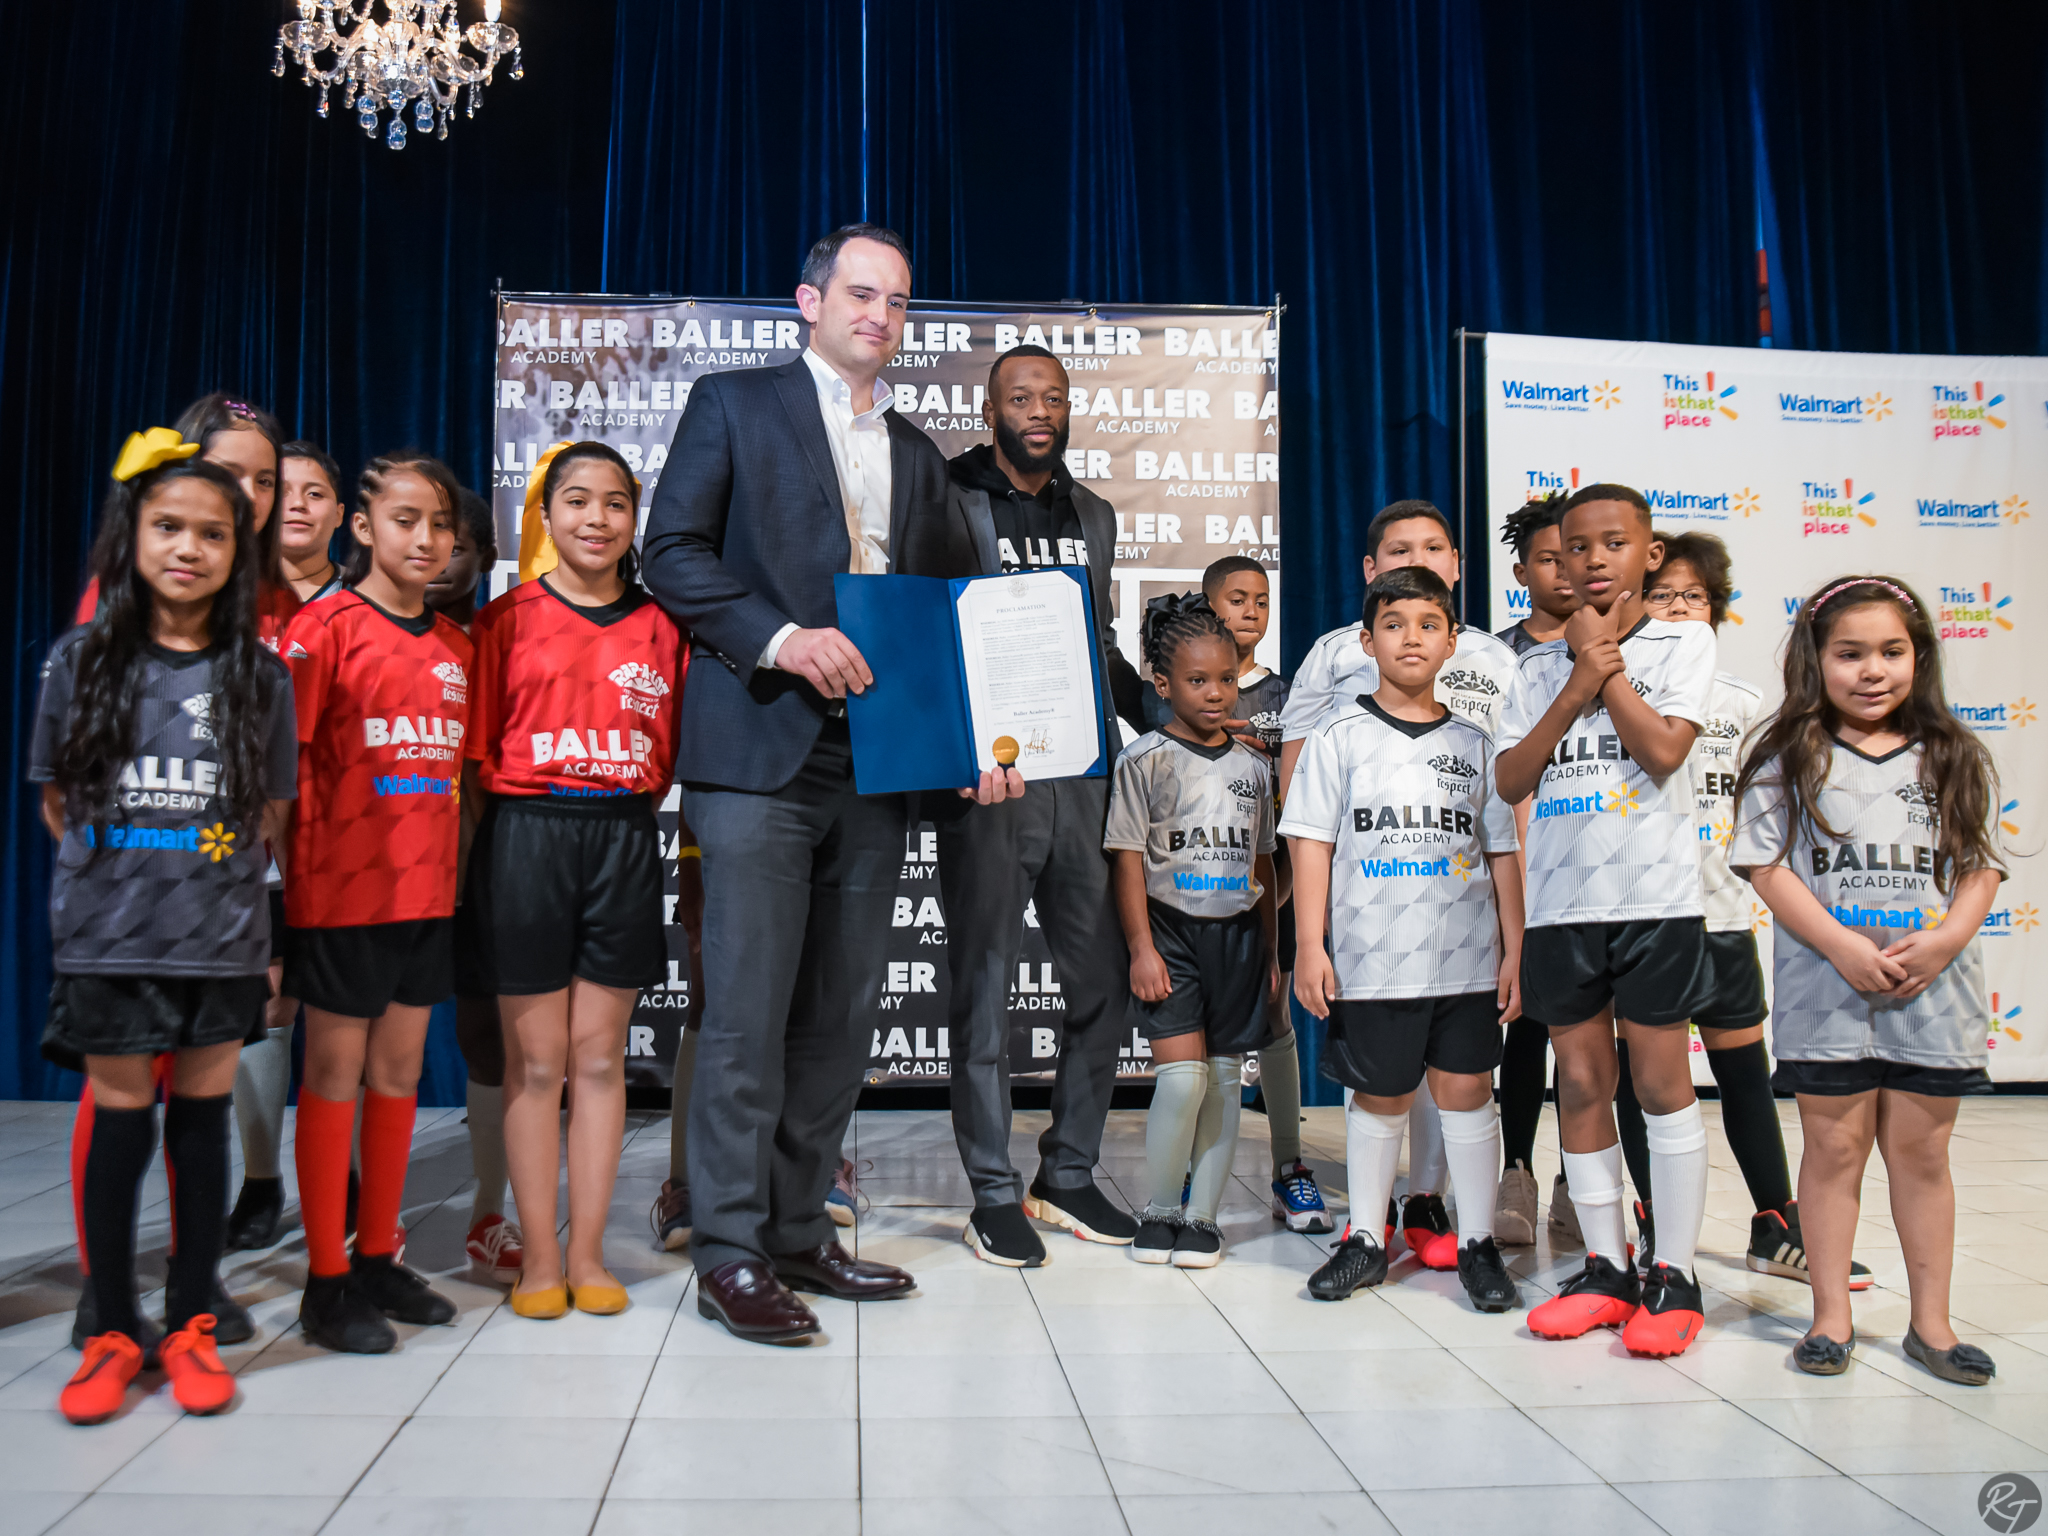 Local Sports Foundation: Baller Academy Teams up with Walmart for Uniform Unveiling Party